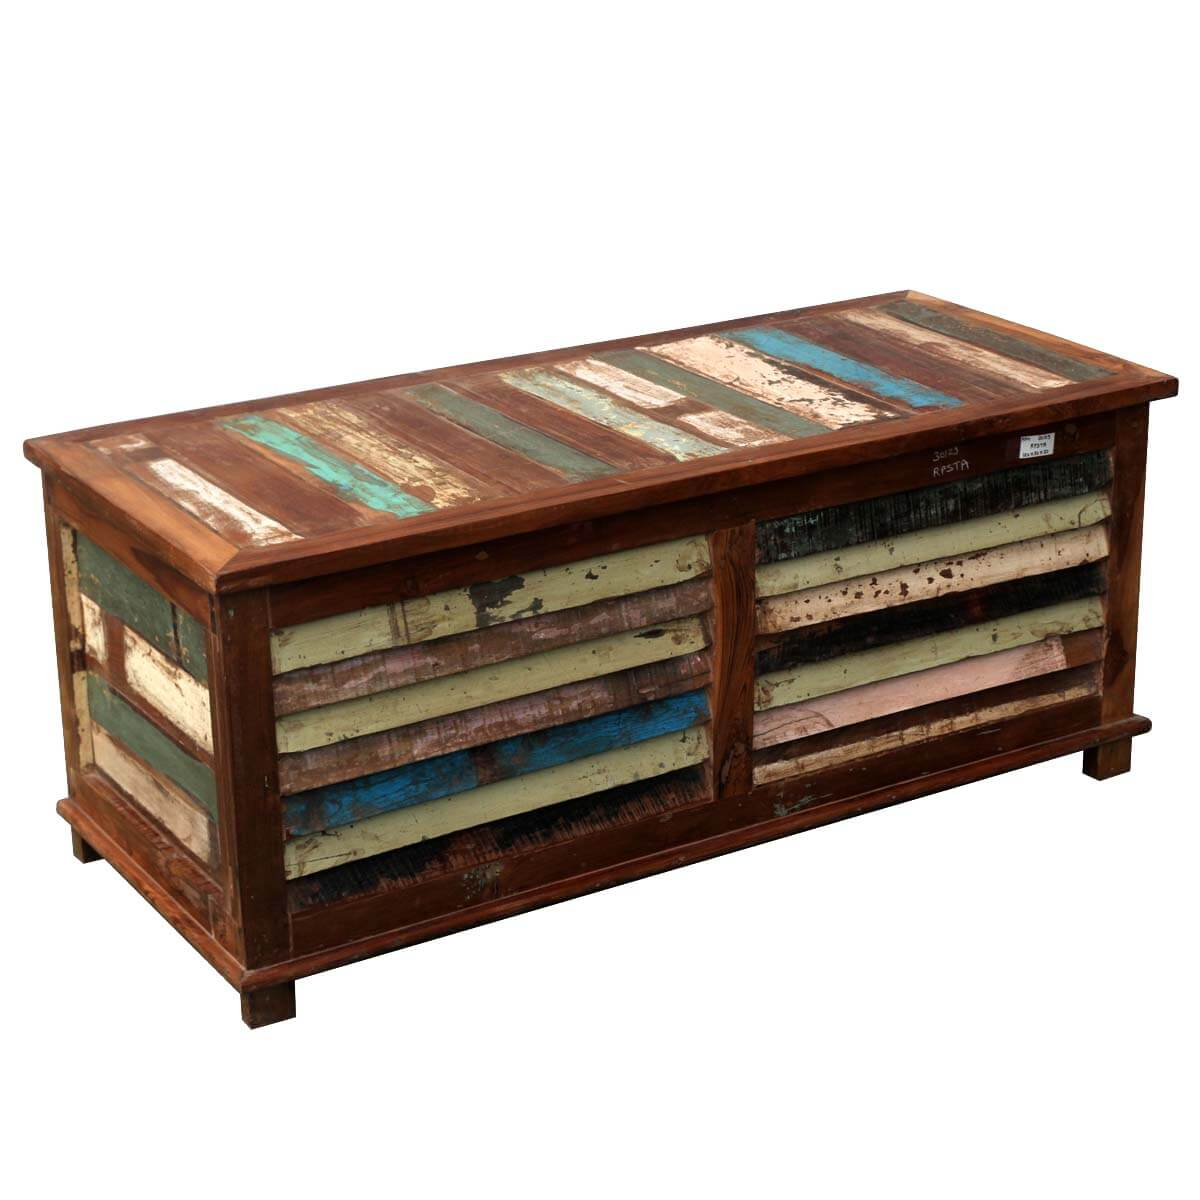 Espresso Coffee Table With Storage: Rustic Reclaimed Wood Multi-Color Coffee Table Storage